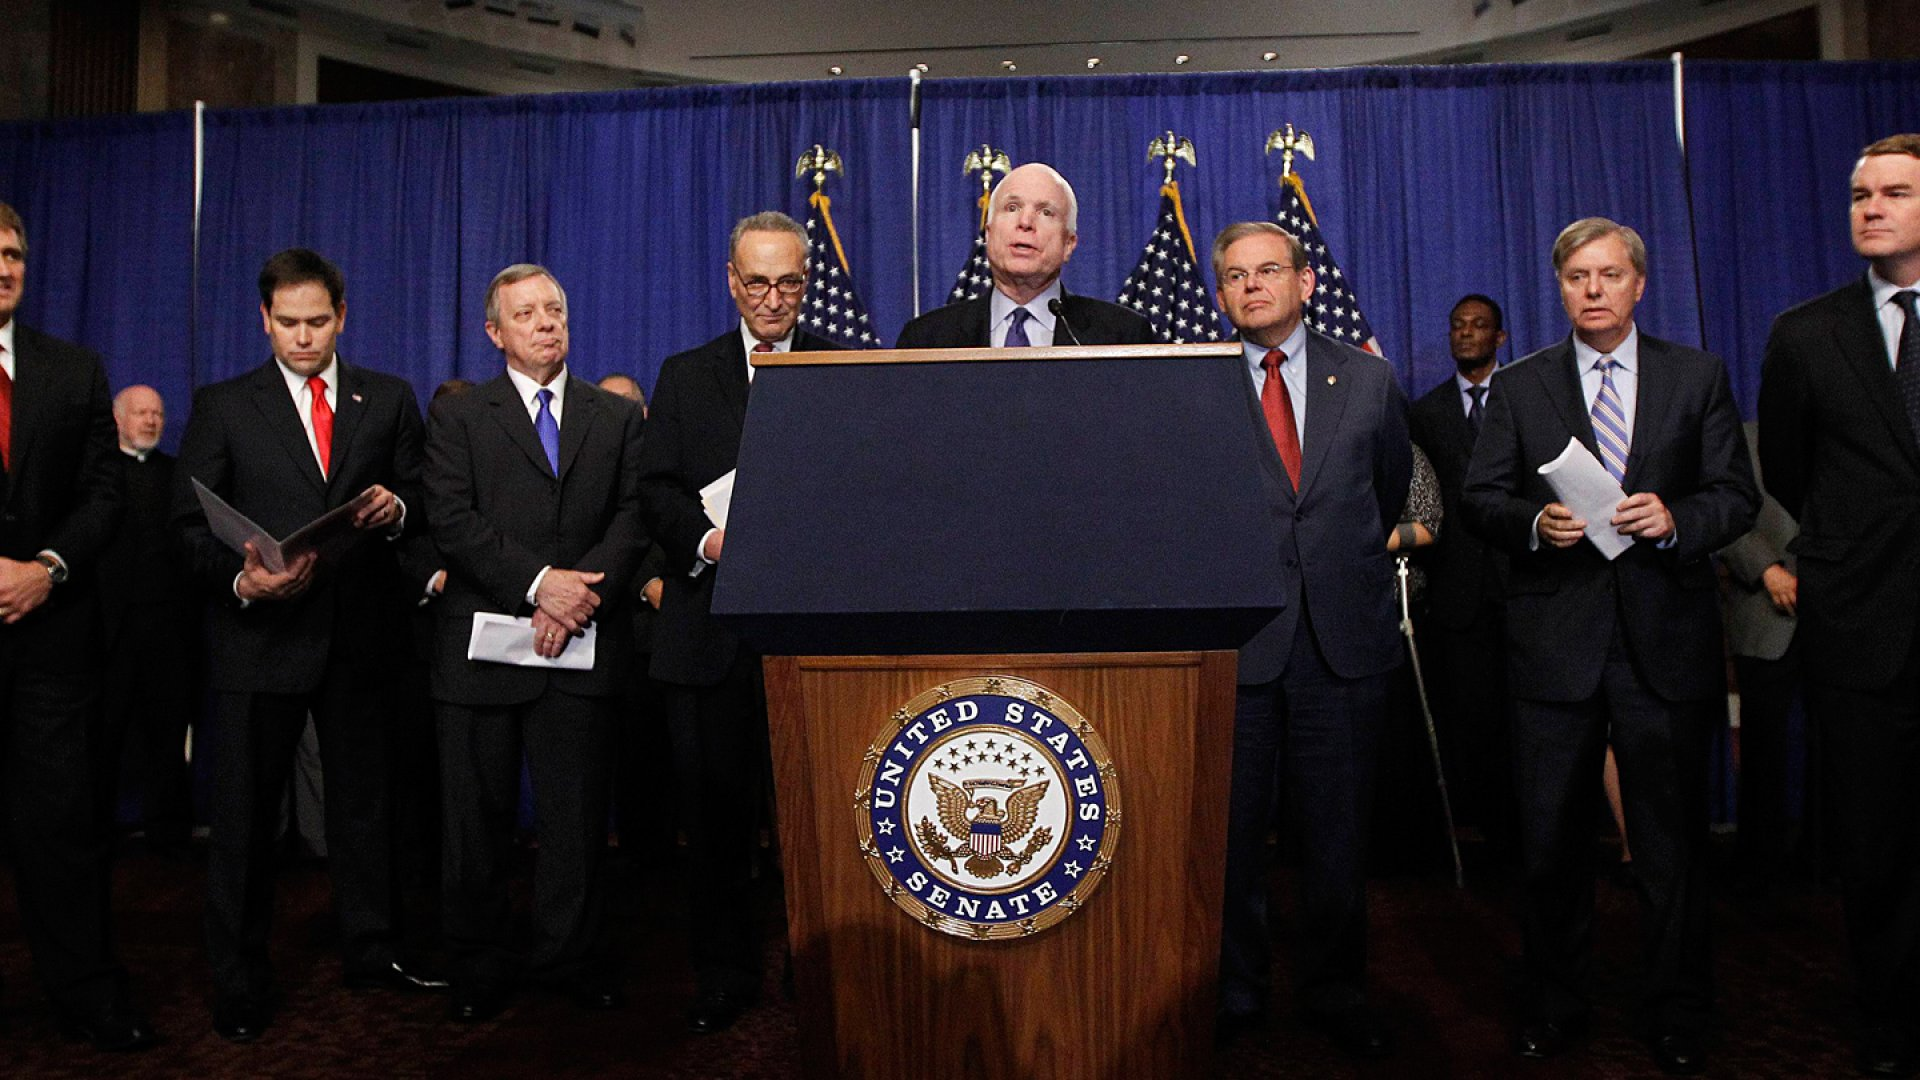 <strong>Gang of Eight</strong>: Senators Jeff Flake, a Republican from Arizona; Marco Rubio, a Republican from Florida; Dick Durbin, a Democrat from Illinois; Chuck Schumer, a Democrat from New York; John McCain, a Republican from Arizona; Bob Menendez, a Democrat from New Jersey; Lindsay Graham, a Republican from South Carolina; and Michael Bennet, a Democrat from Colorado (pictured left to right), crafted comprehensive legislation to overhaul the immigration system.